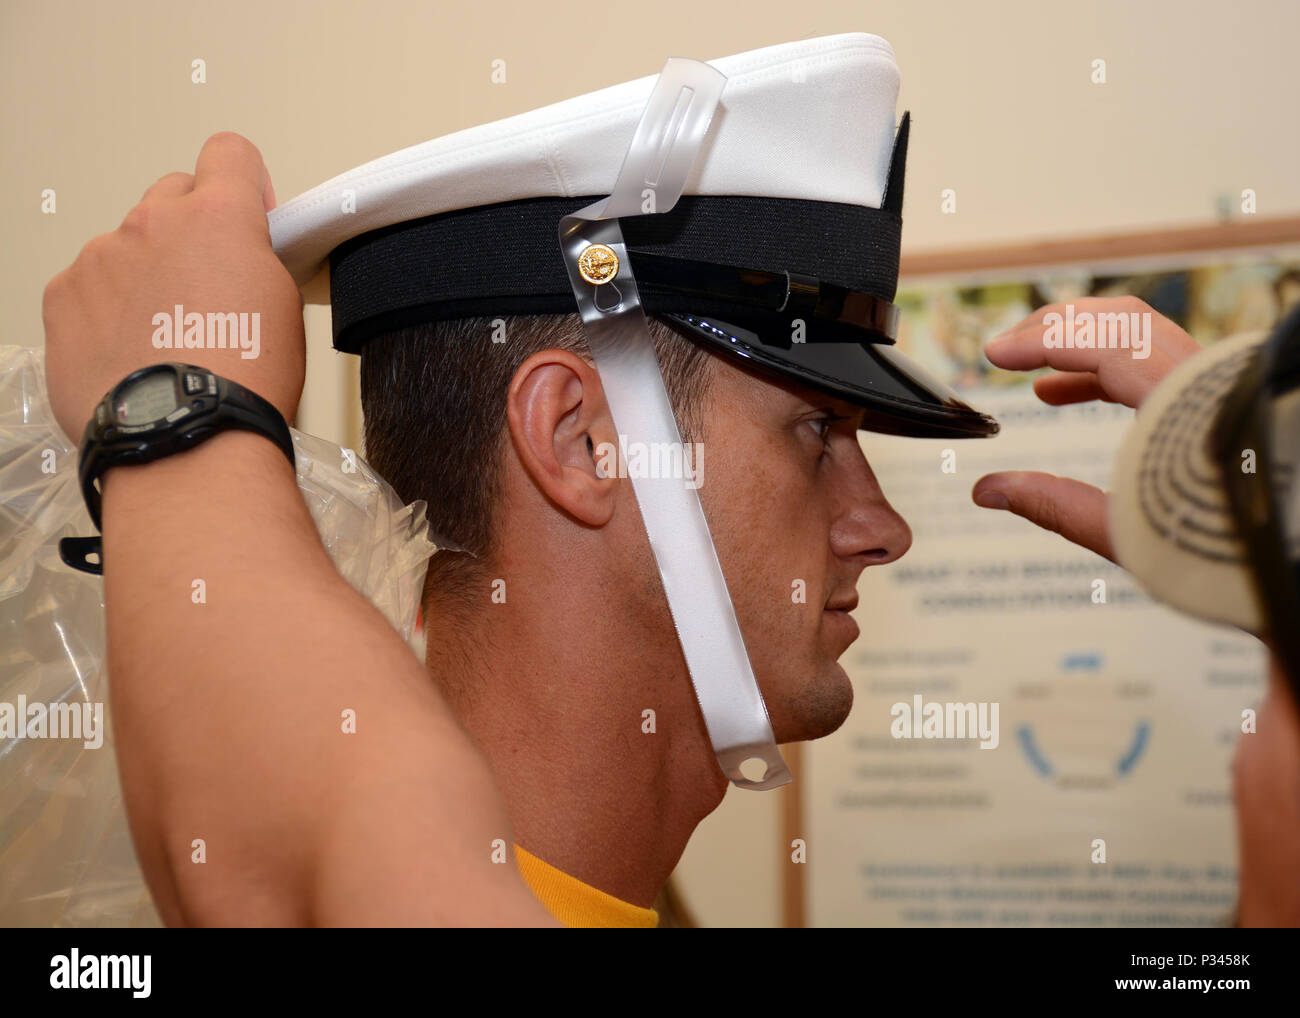 PATUXENT RIVER, Maryland (Aug  12, 2016) - Chief Naval Air Crewman